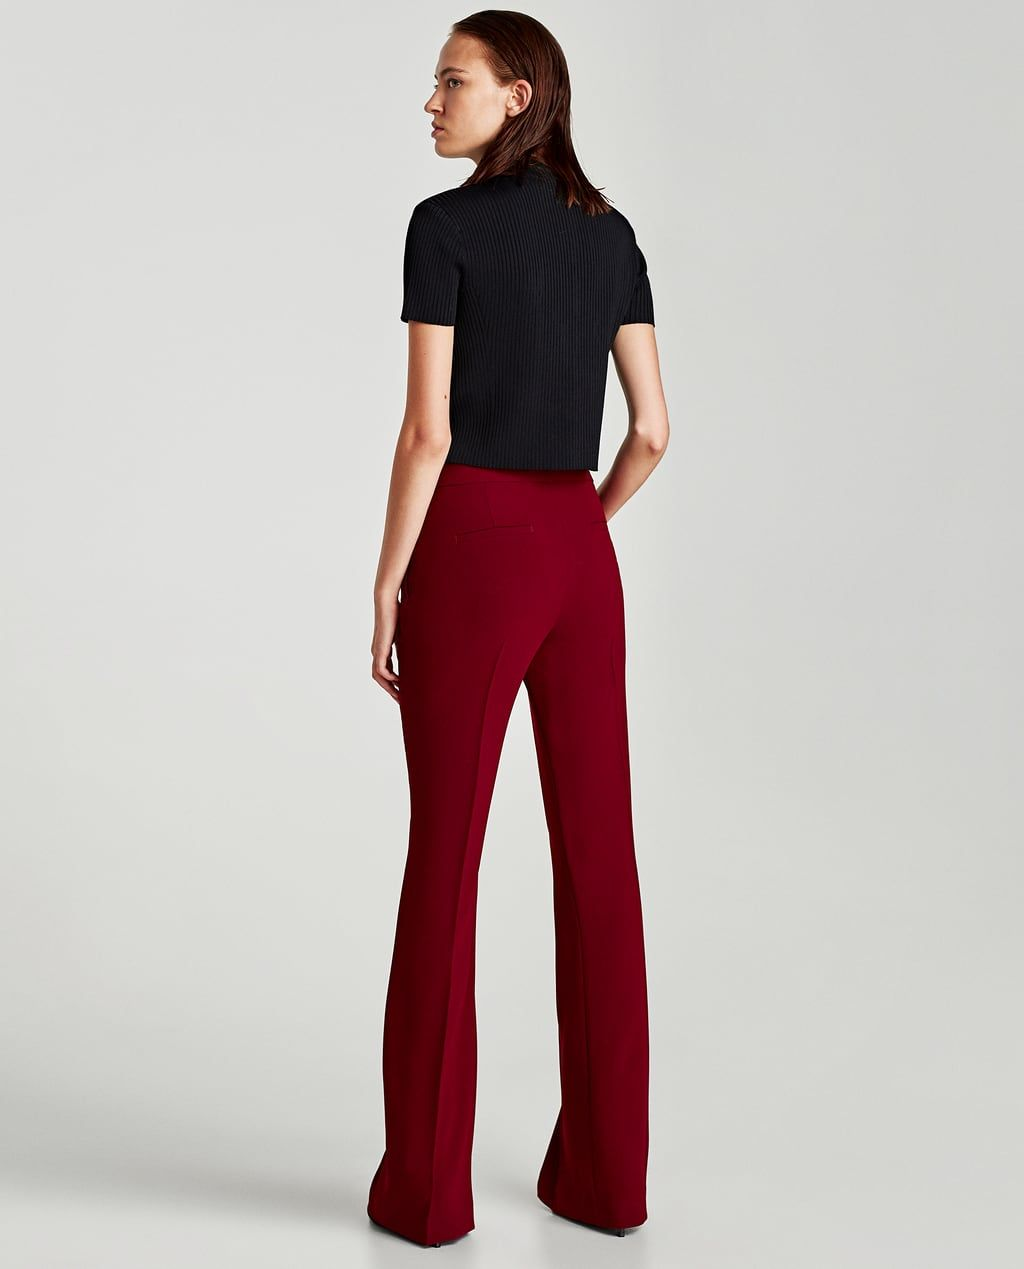 FLARED FLOWING TROUSERS-View all-TROUSERS-WOMAN  b27d4e4d27be